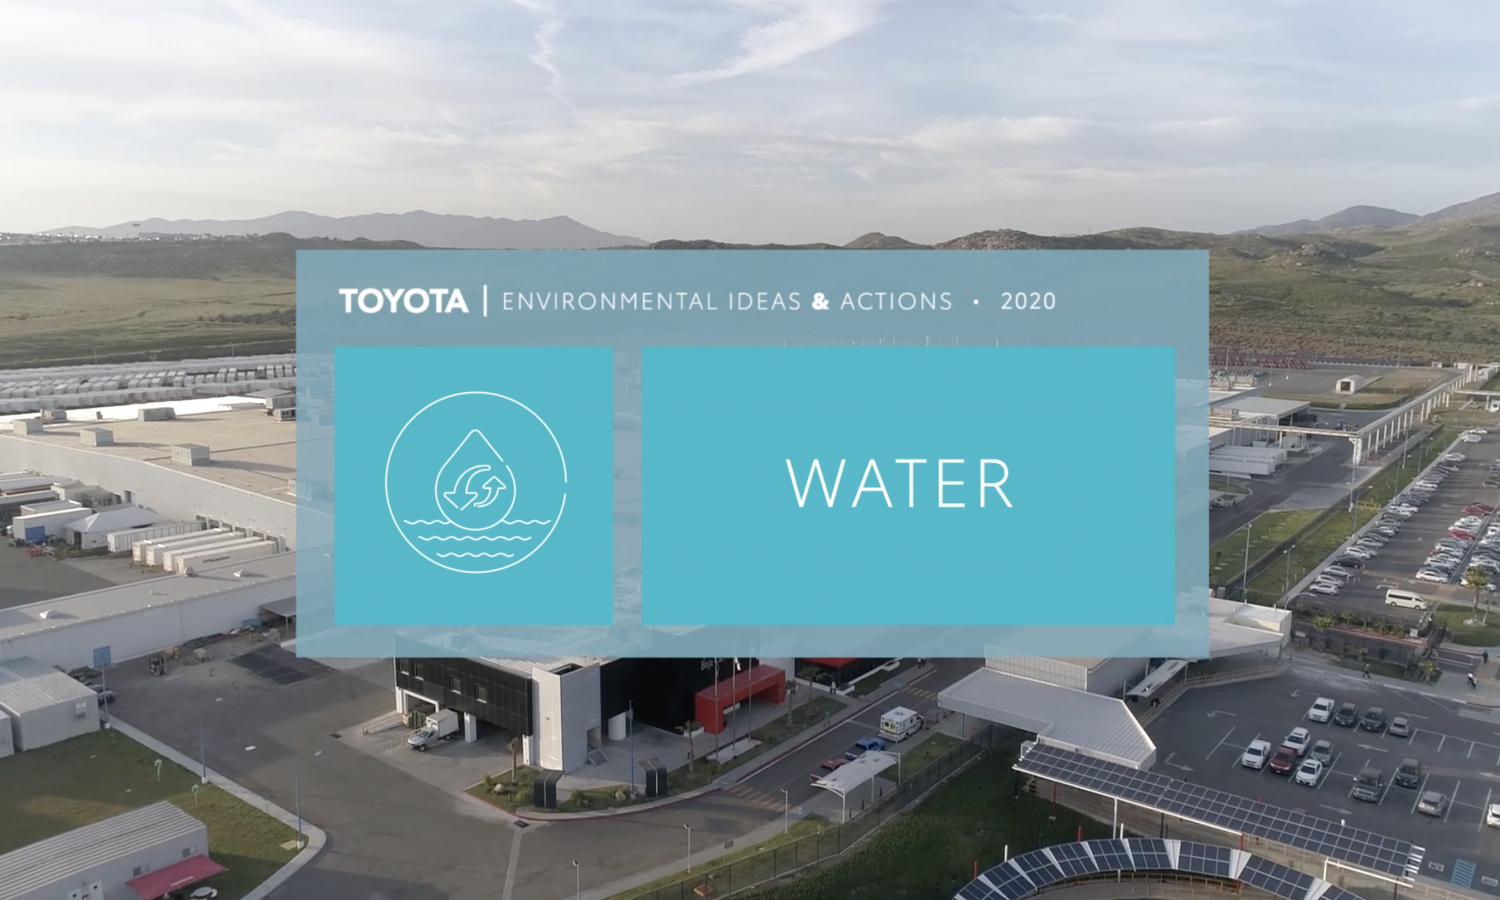 How This Toyota Plant Recycles Millions of Gallons of Water Every Year